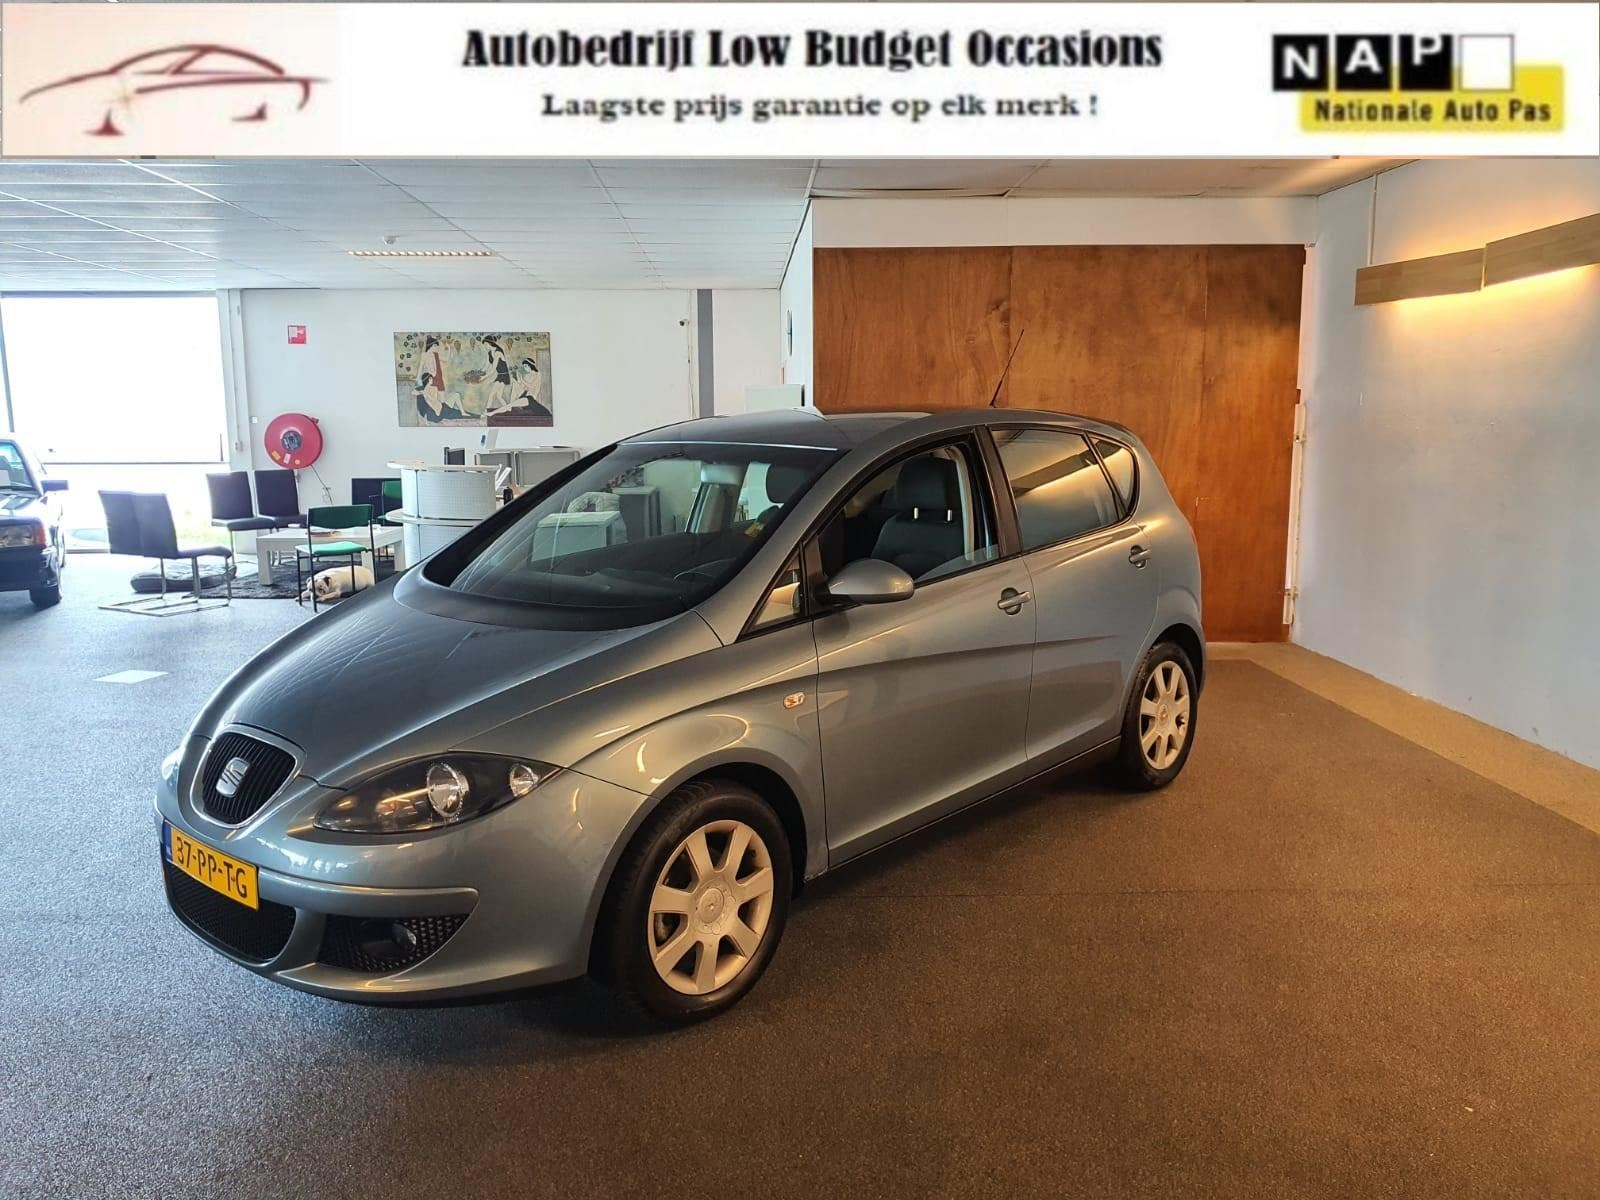 Seat Altea occasion - Low Budget Occasions